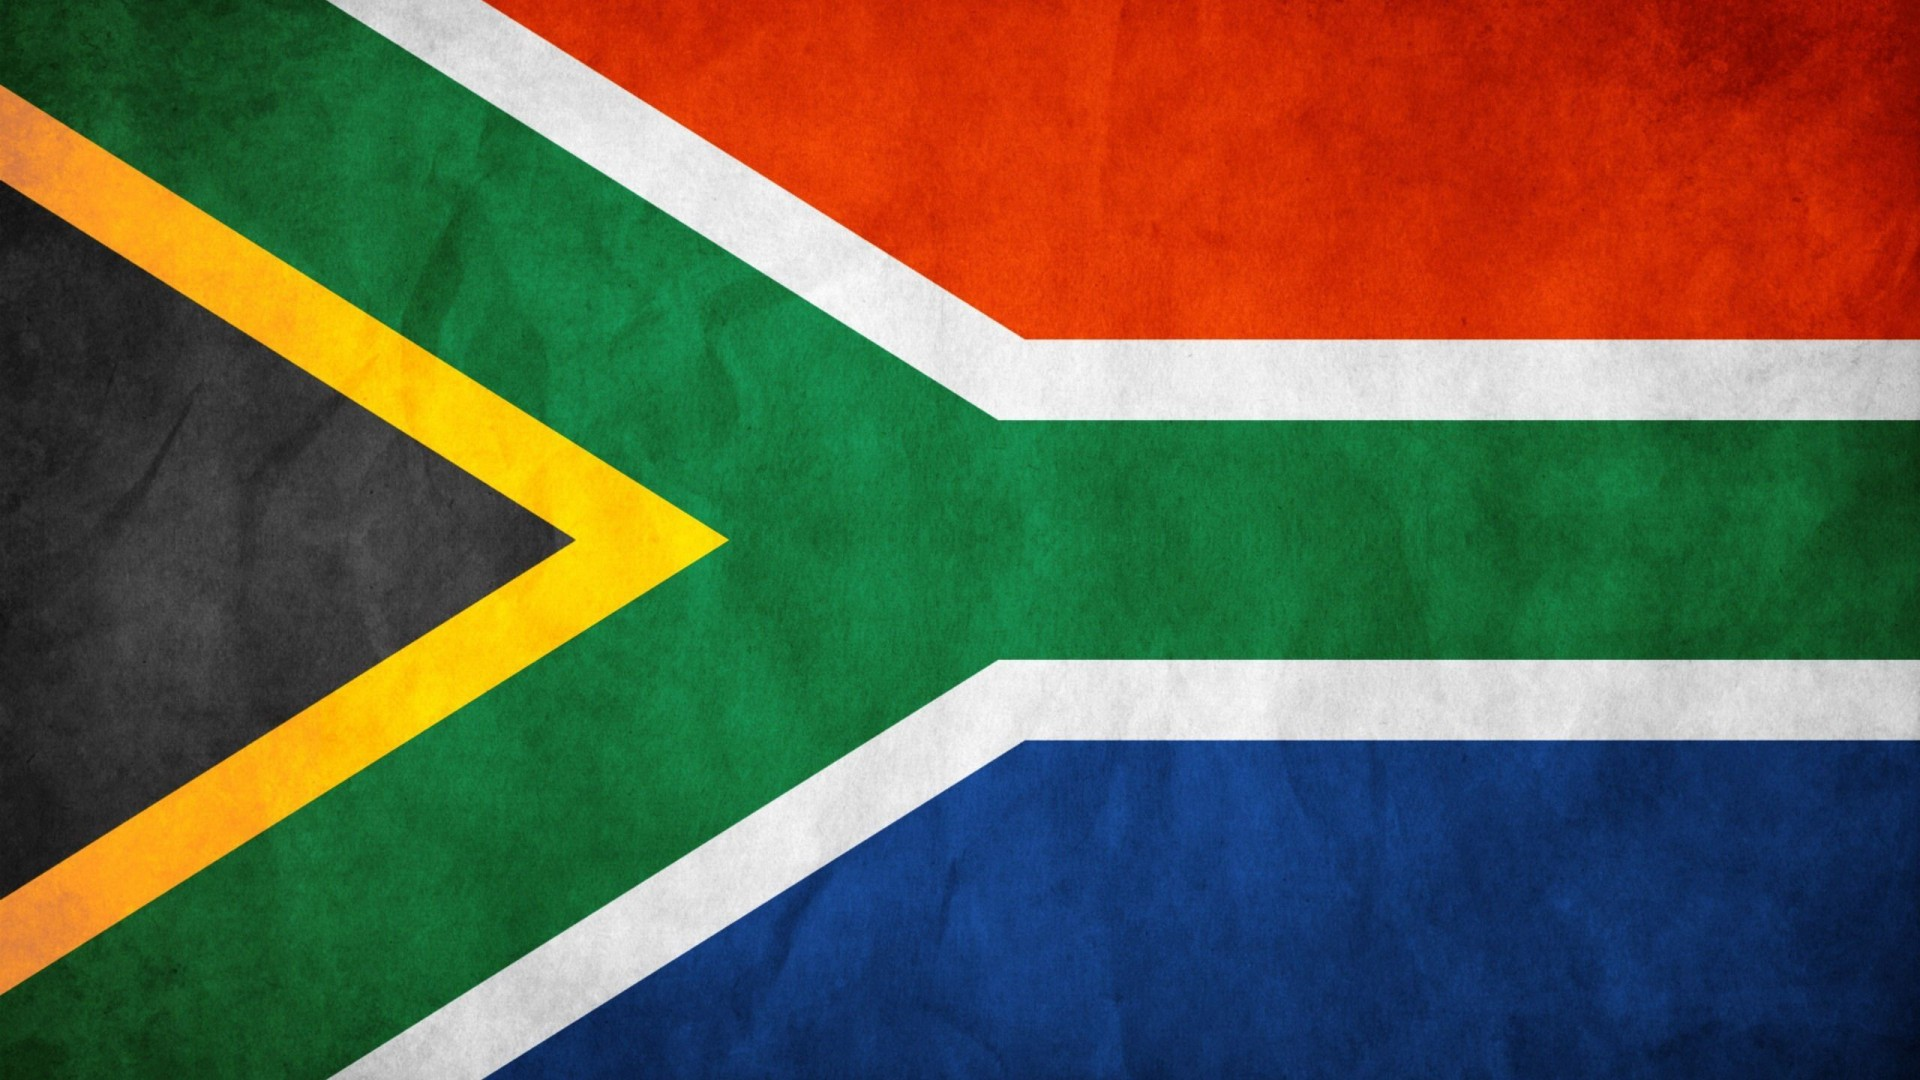 South Africa Flag   Wallpaper High Definition High Quality 1920x1080